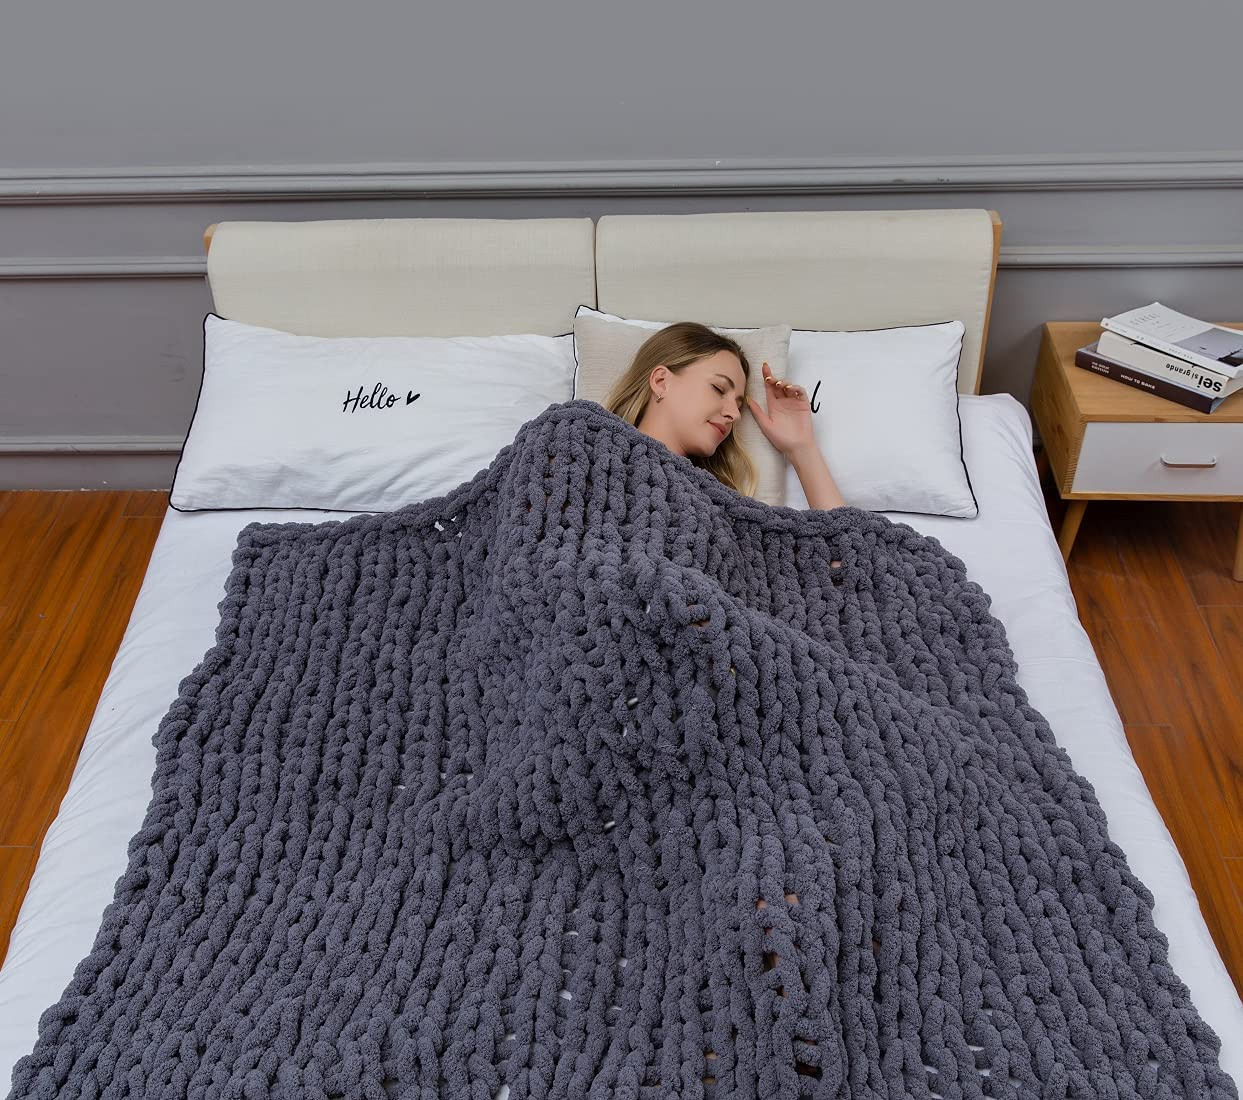 Chunky Knit All stores are Max 80% OFF sold Luxury Throw Blanket Sof Premium Large Cable Knitted